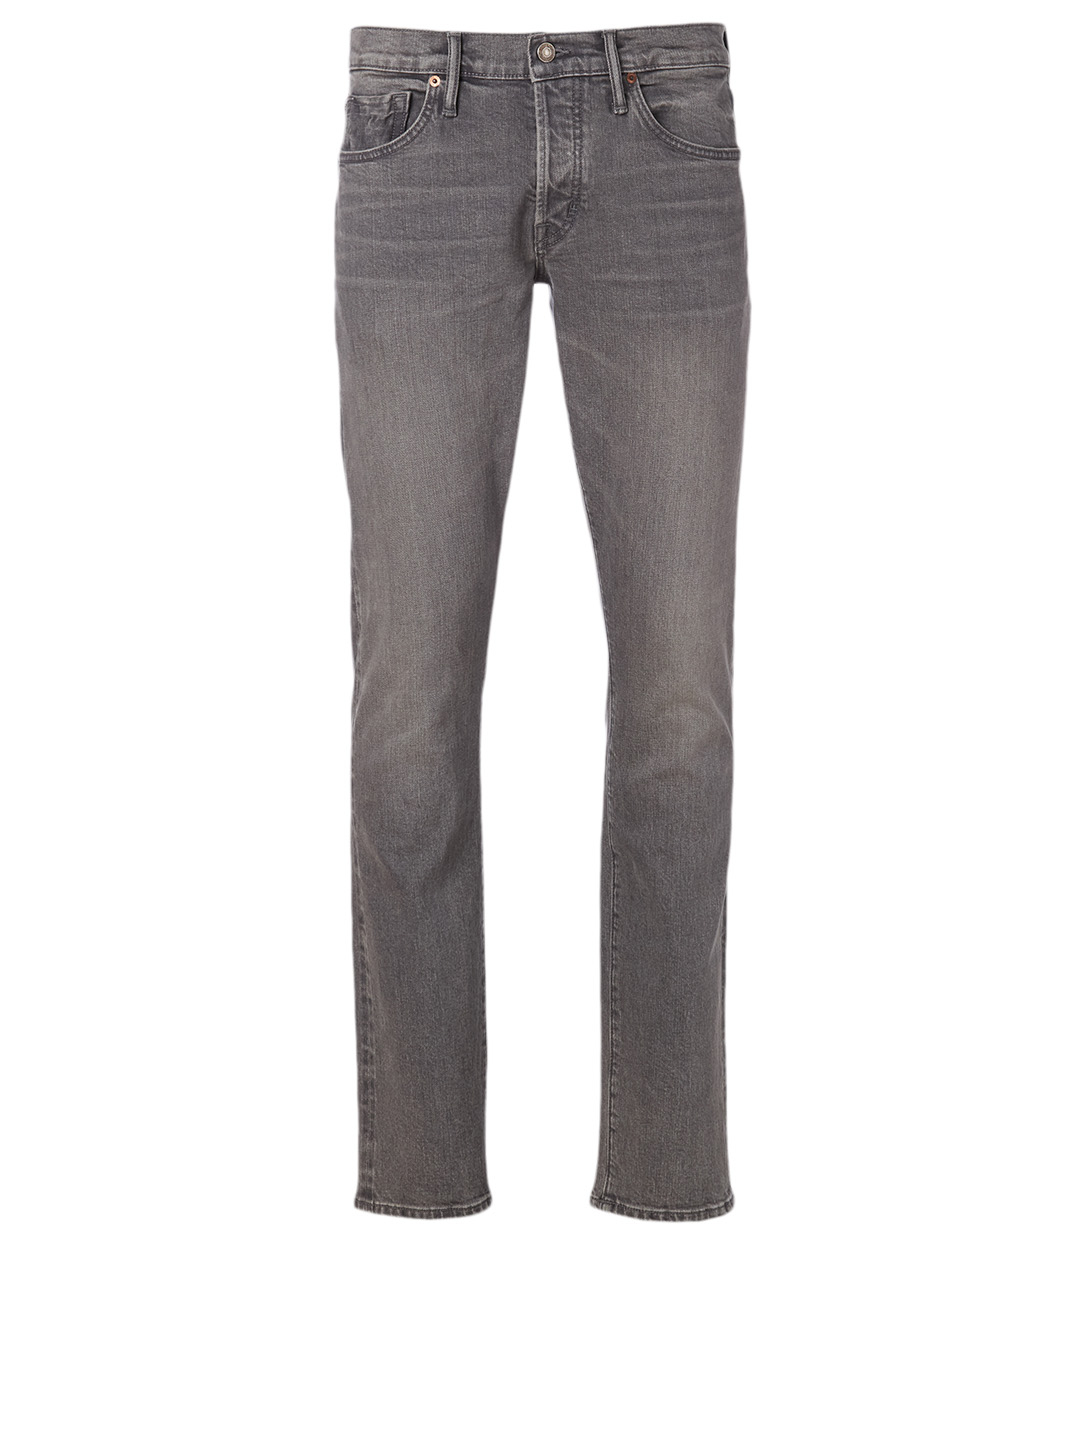 TOM FORD Cotton Stretch Slim Jeans Men's Grey